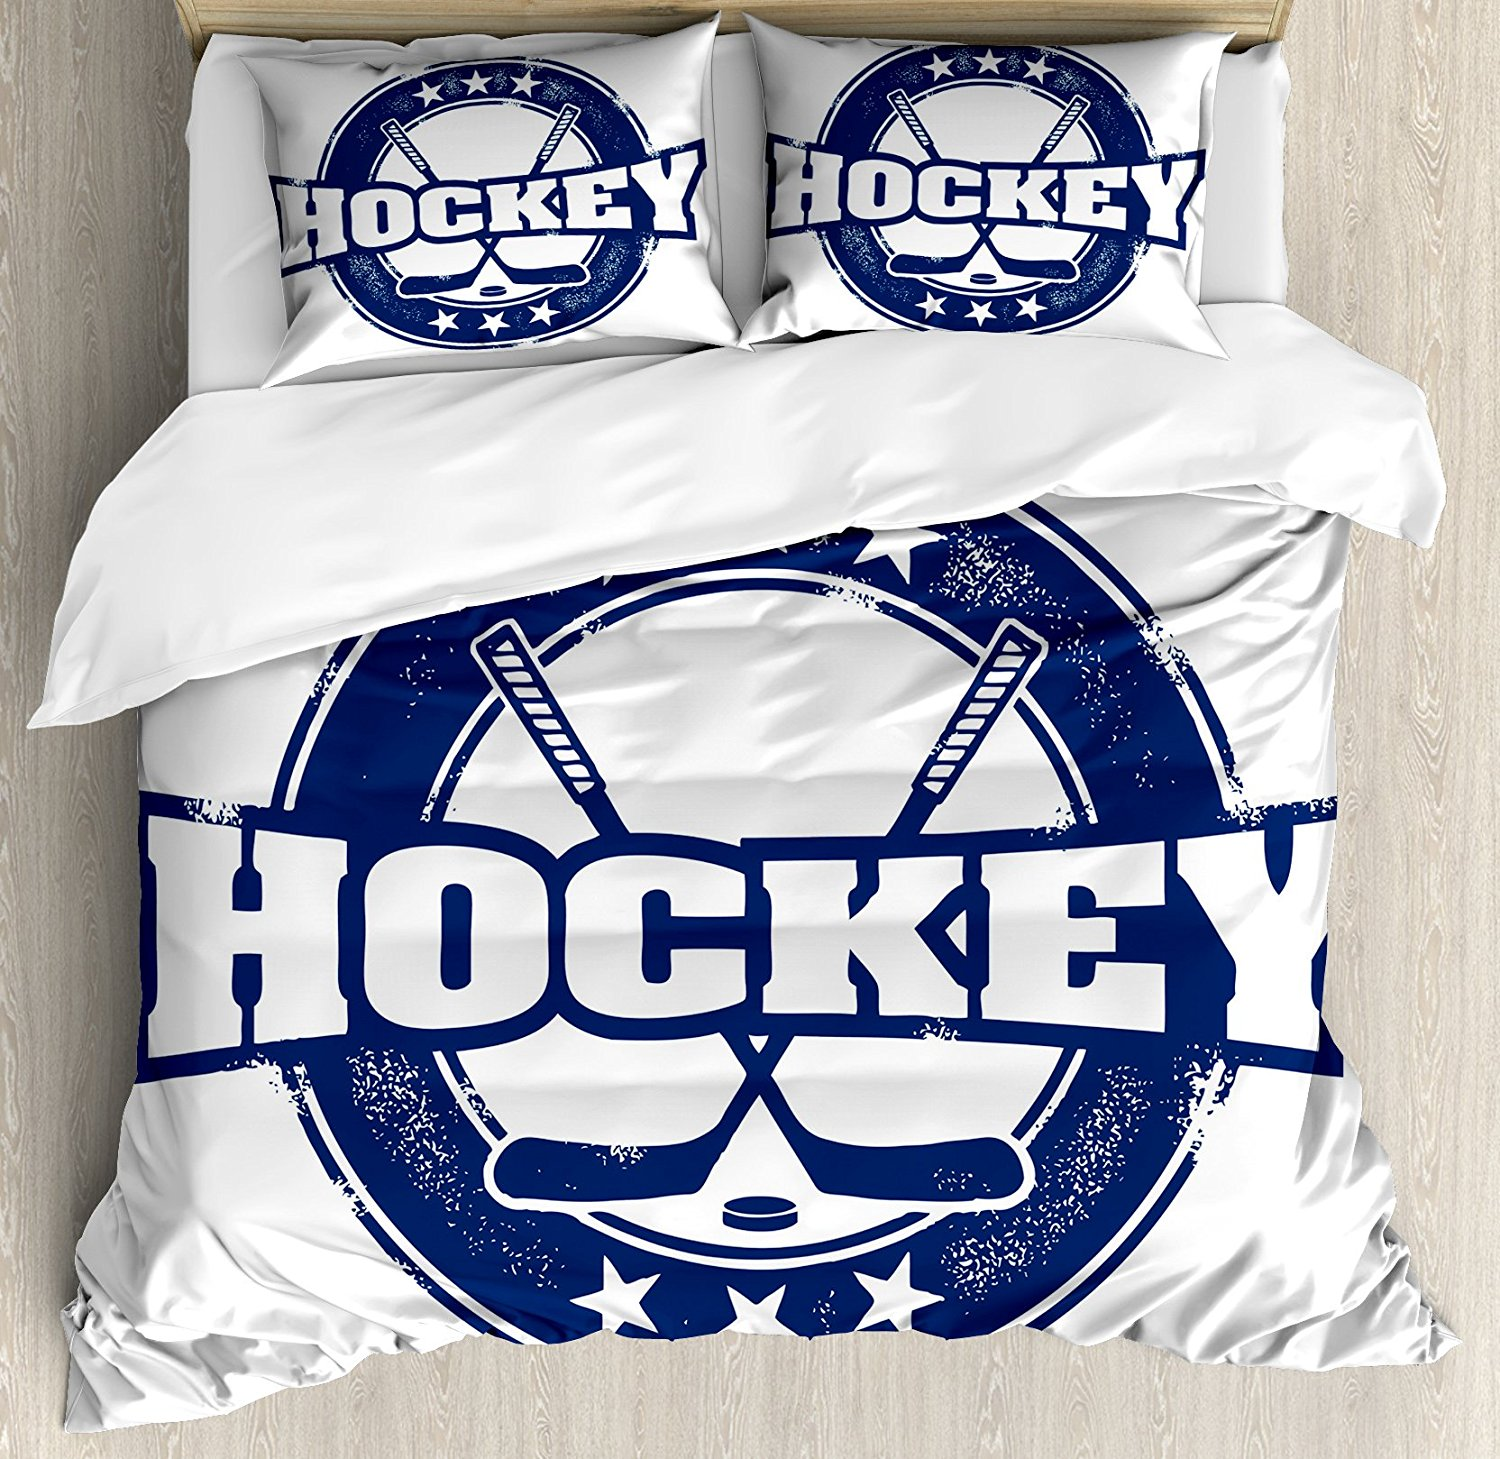 Hockey Duvet Cover Set Weathered Looking Vintage Stamp Composition Text Sticks and Stars in Circle 4 Piece Bedding Set